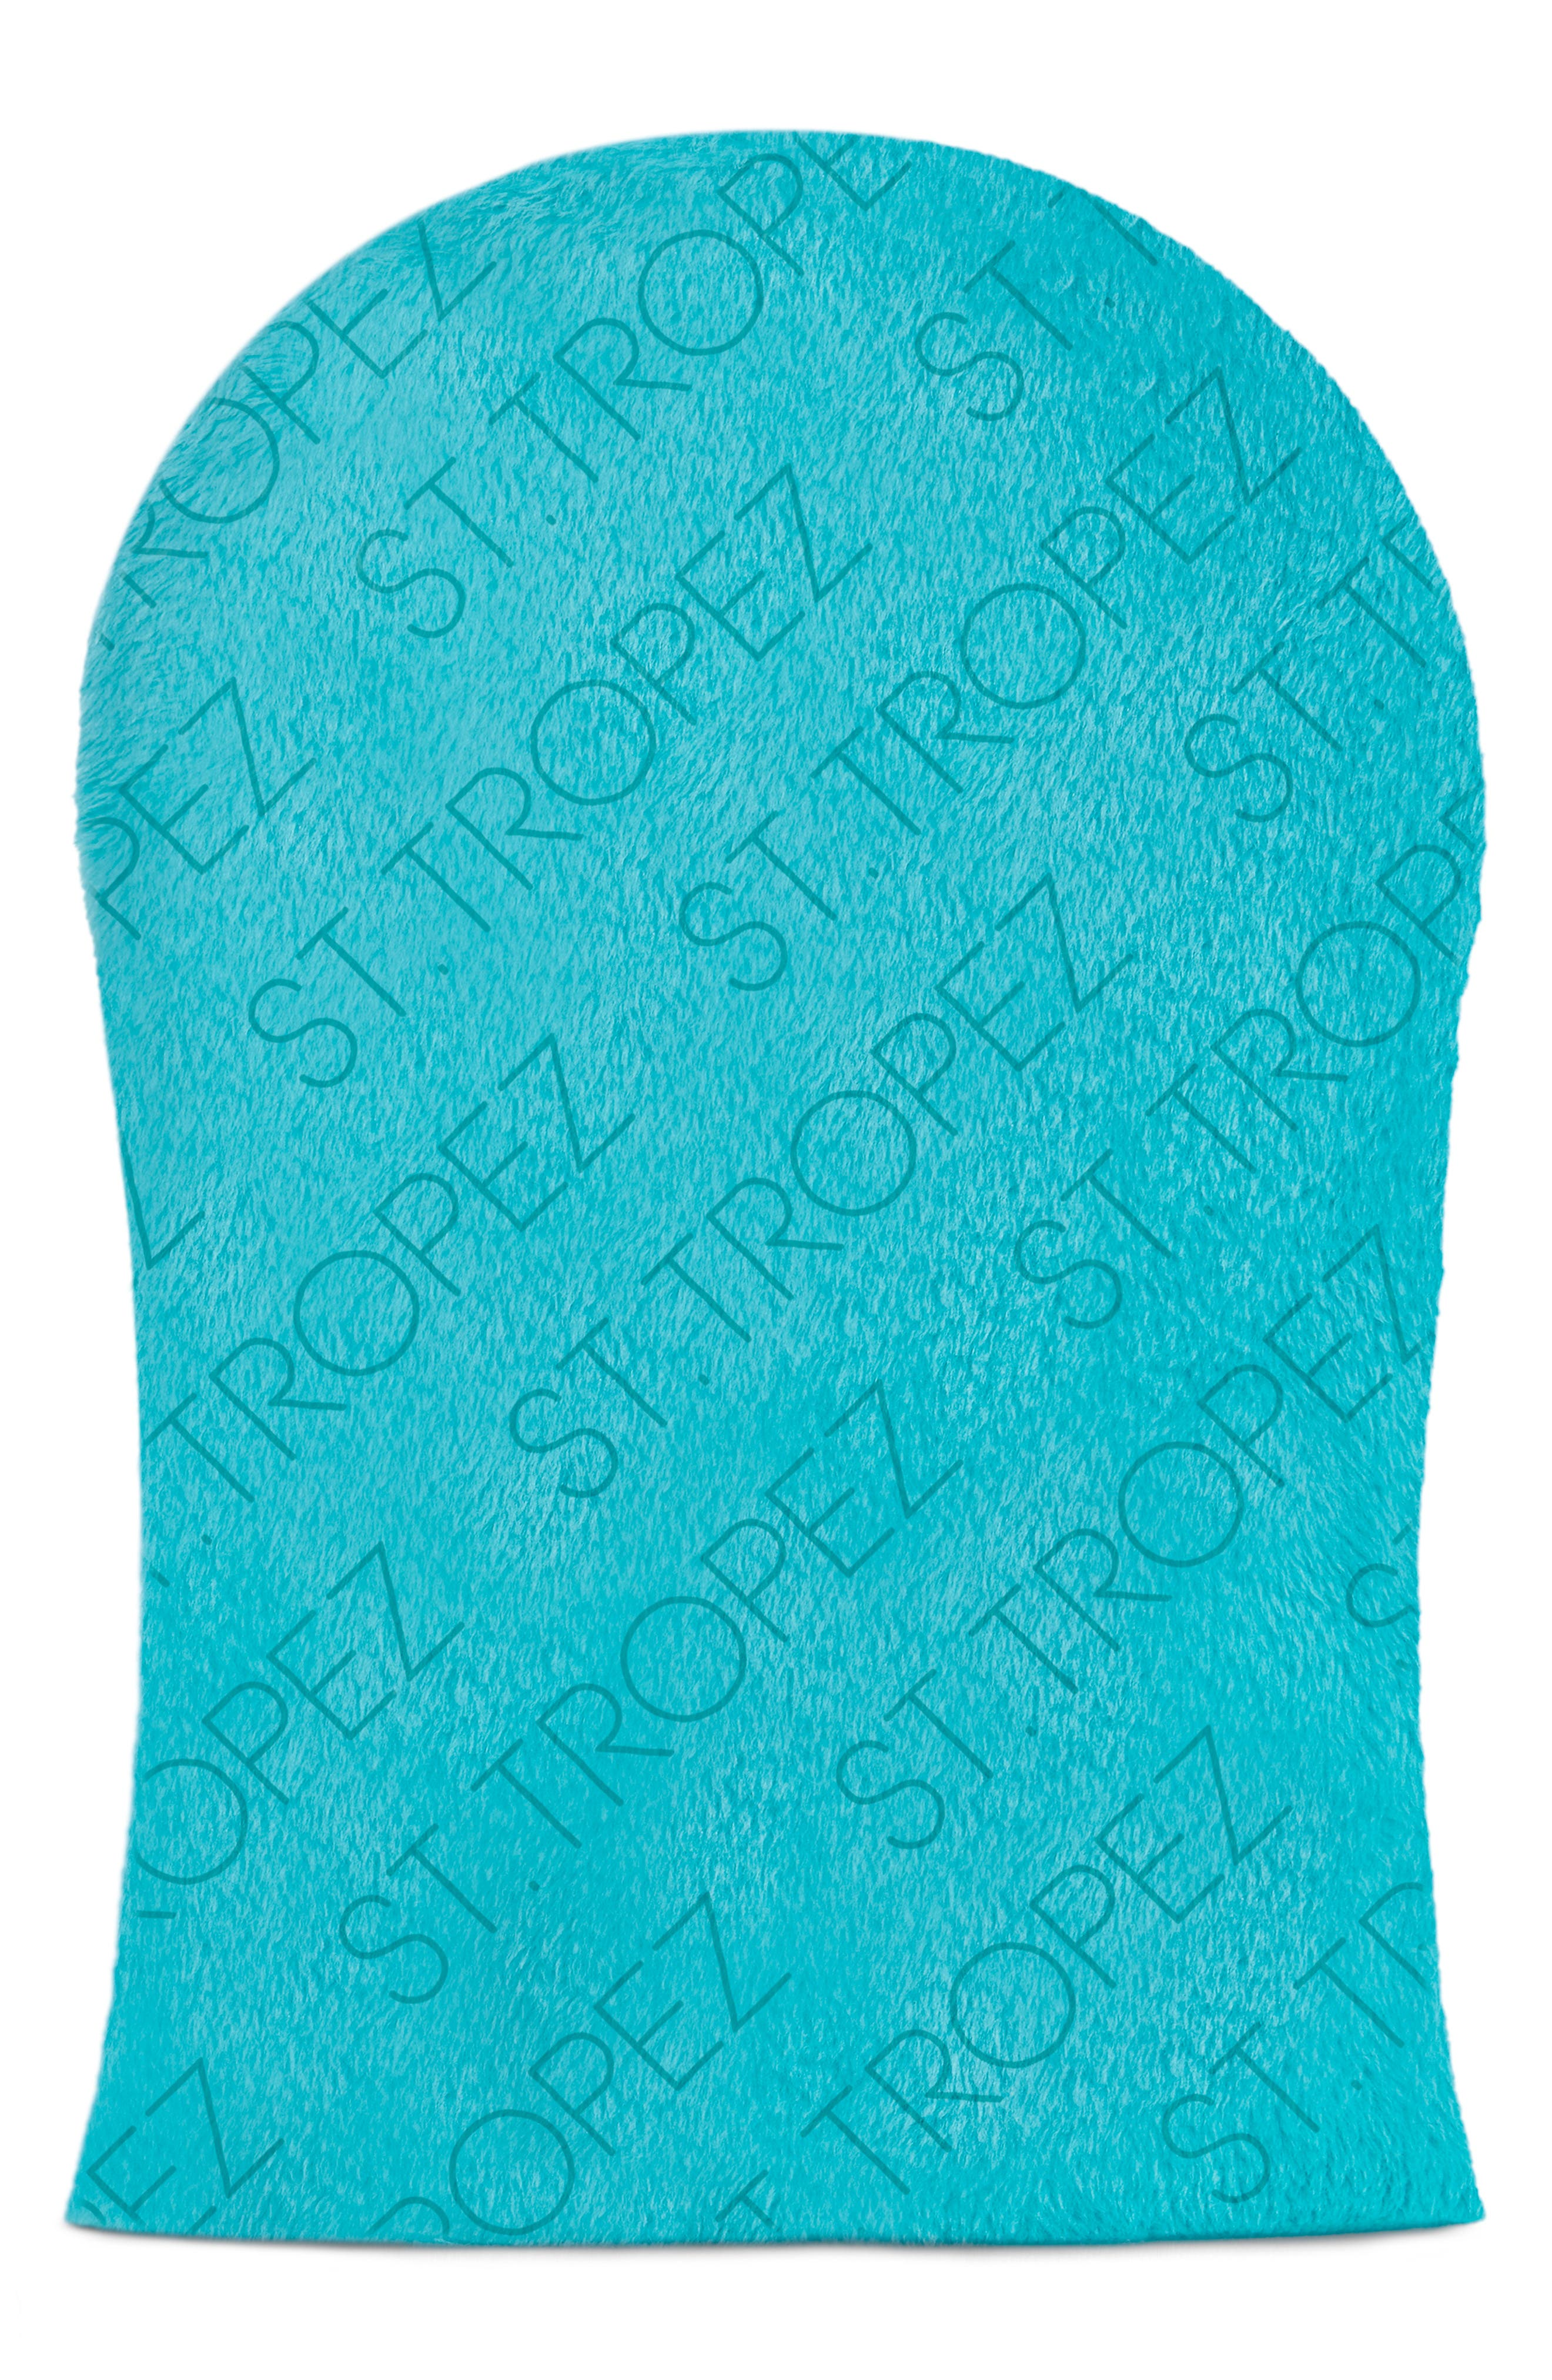 Dual Sided Luxe Tan Applicator Mitt   Nordstrom